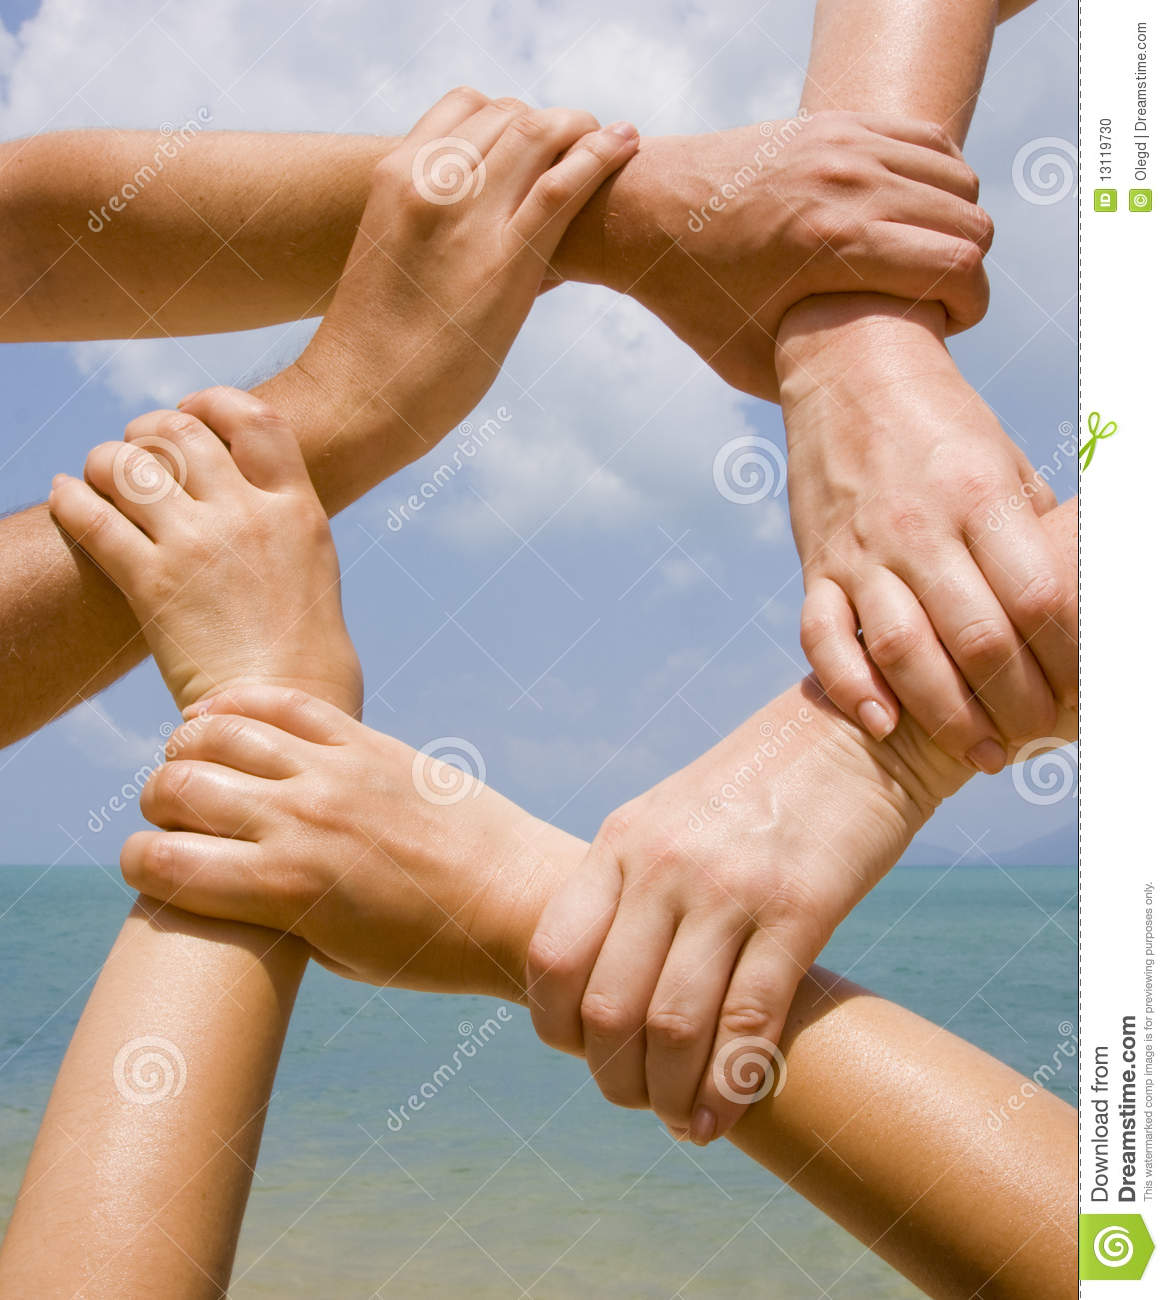 Many hands connecting to a Connecting Hands